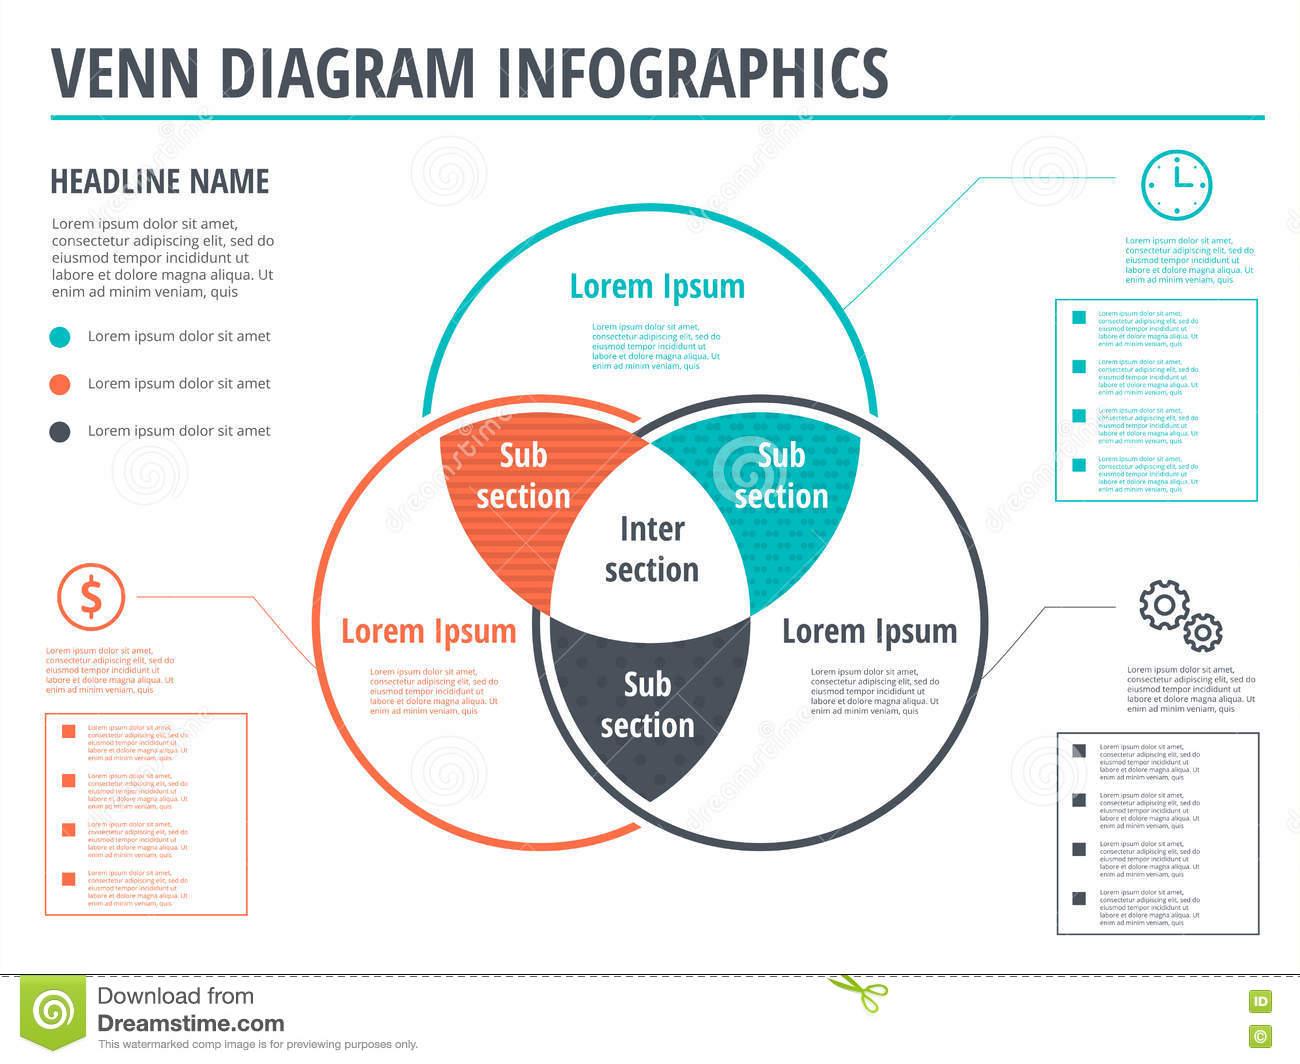 File Diagrams People And A Venn Diagram Stock Illustration Manual Guide